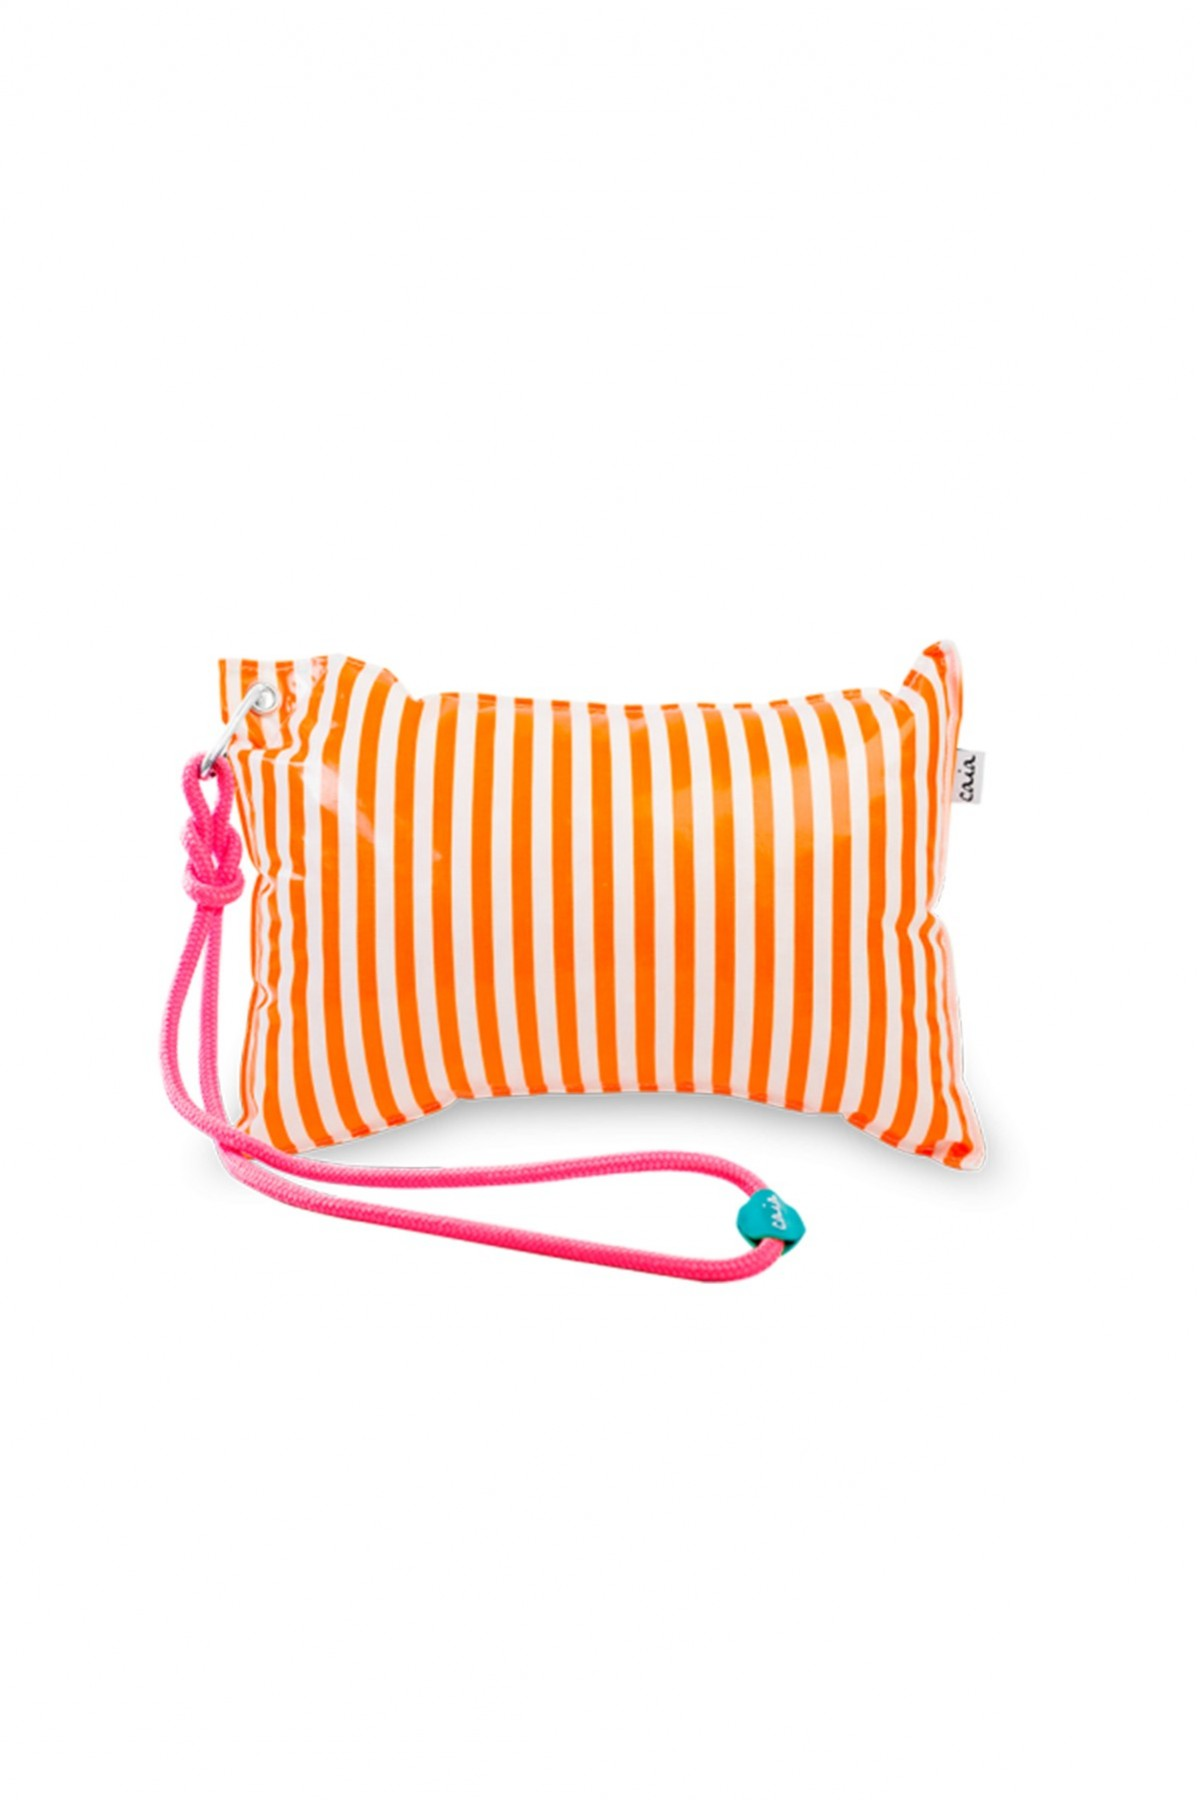 Caia Tangerine - Beach Pillow